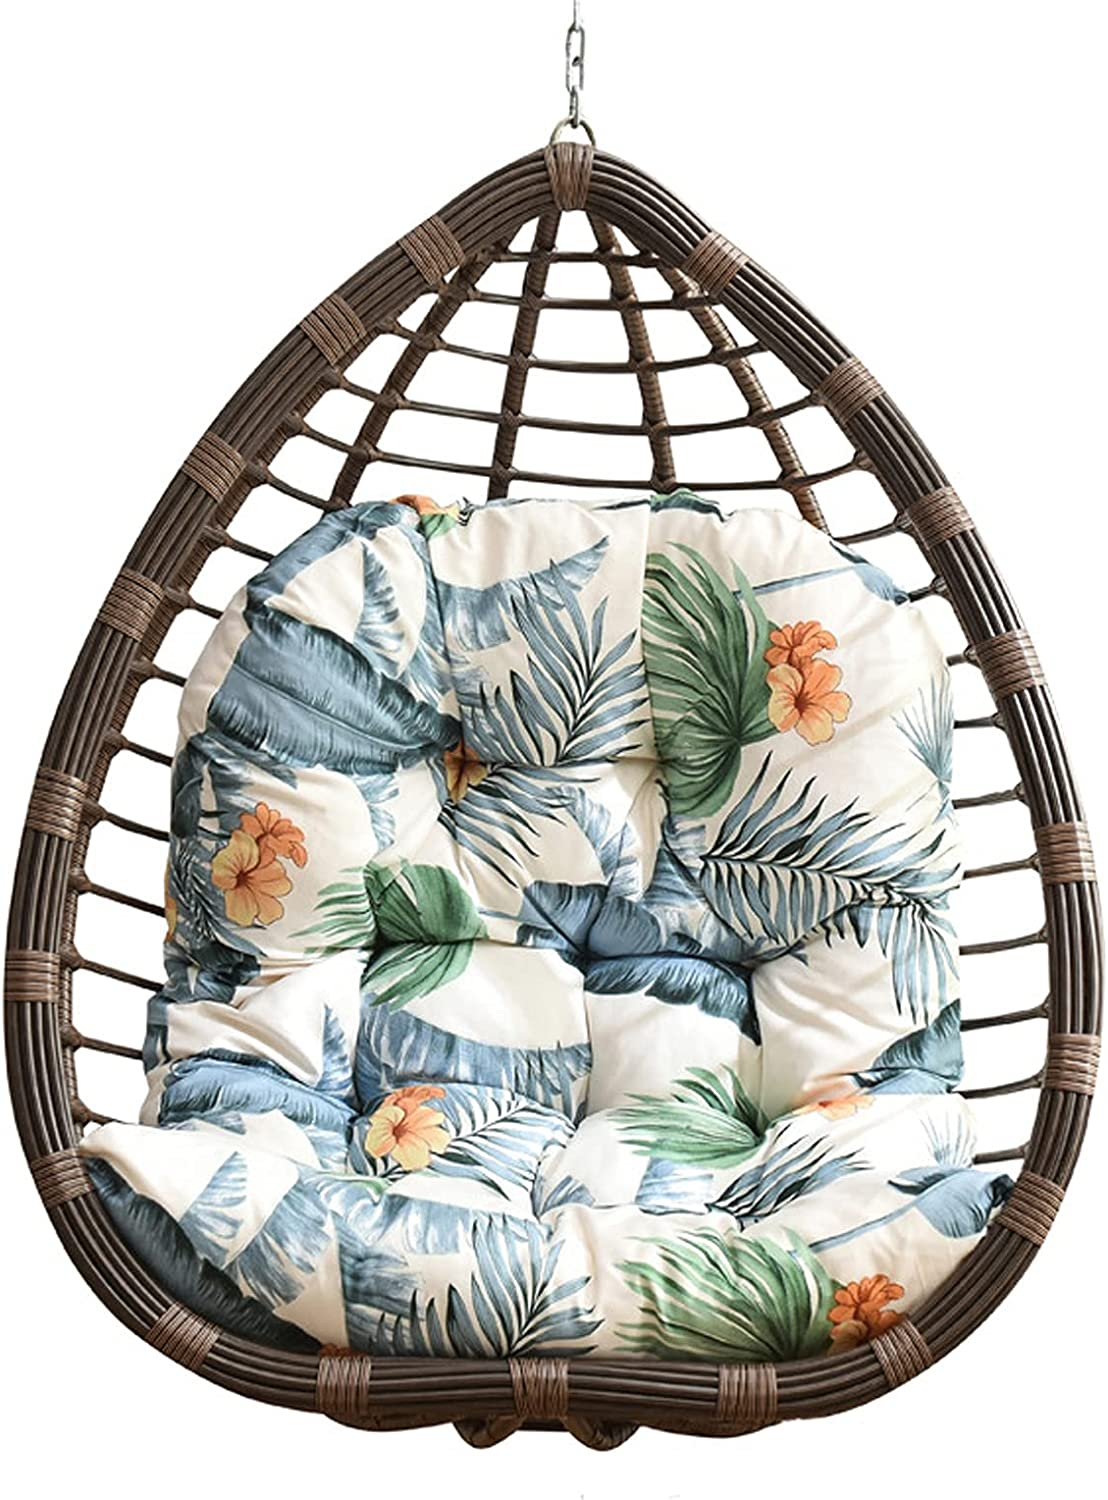 FQCD Soft Thicken Comfy Fort Worth Mall Hammock Cushions OFFicial shop Chair Basket Cus